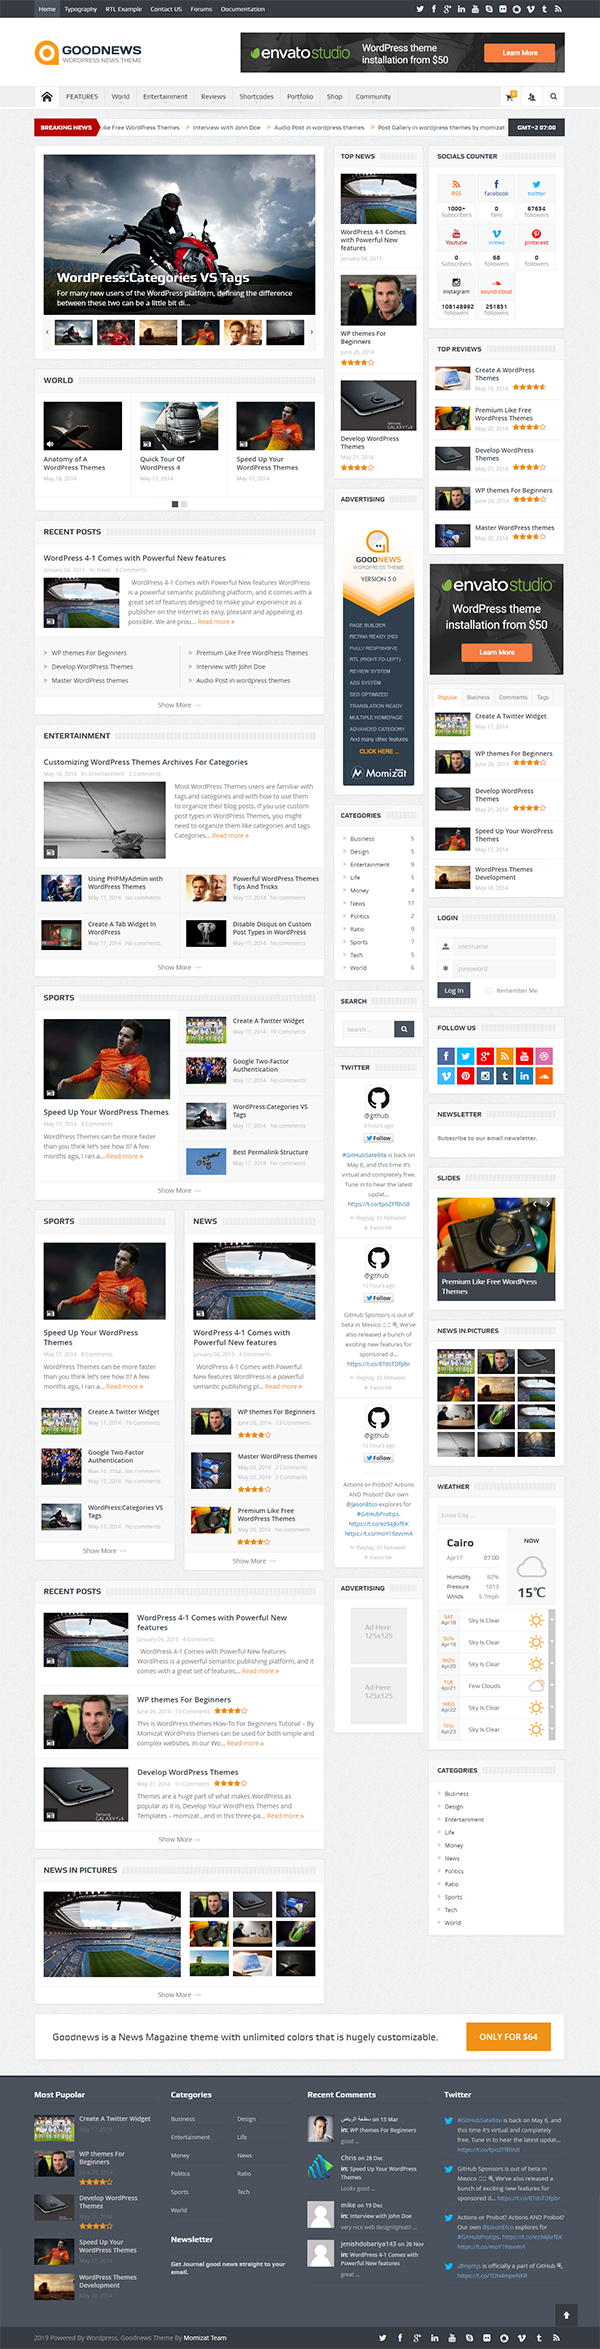 Goodnews – Responsive WordPress News / Magazine